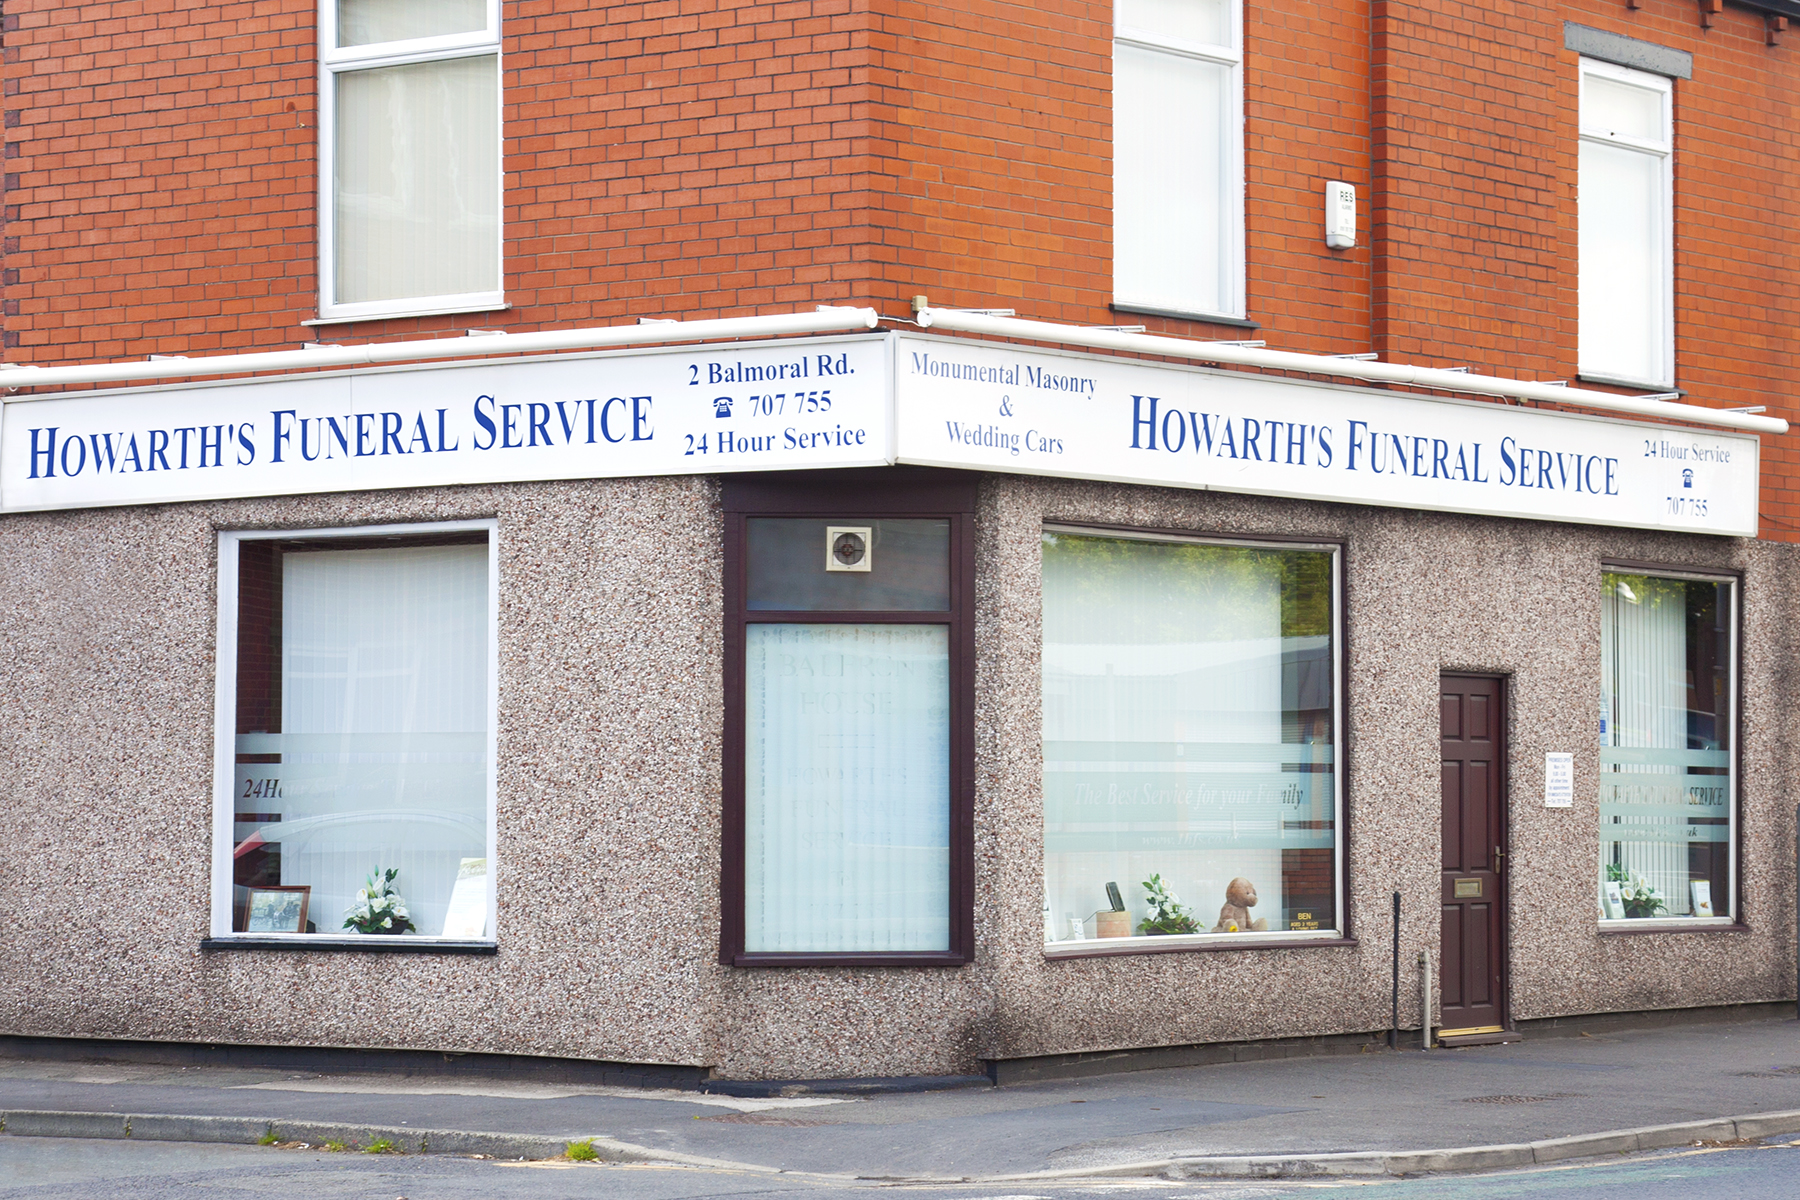 Howarth's Funeral Service - Farnworth Office